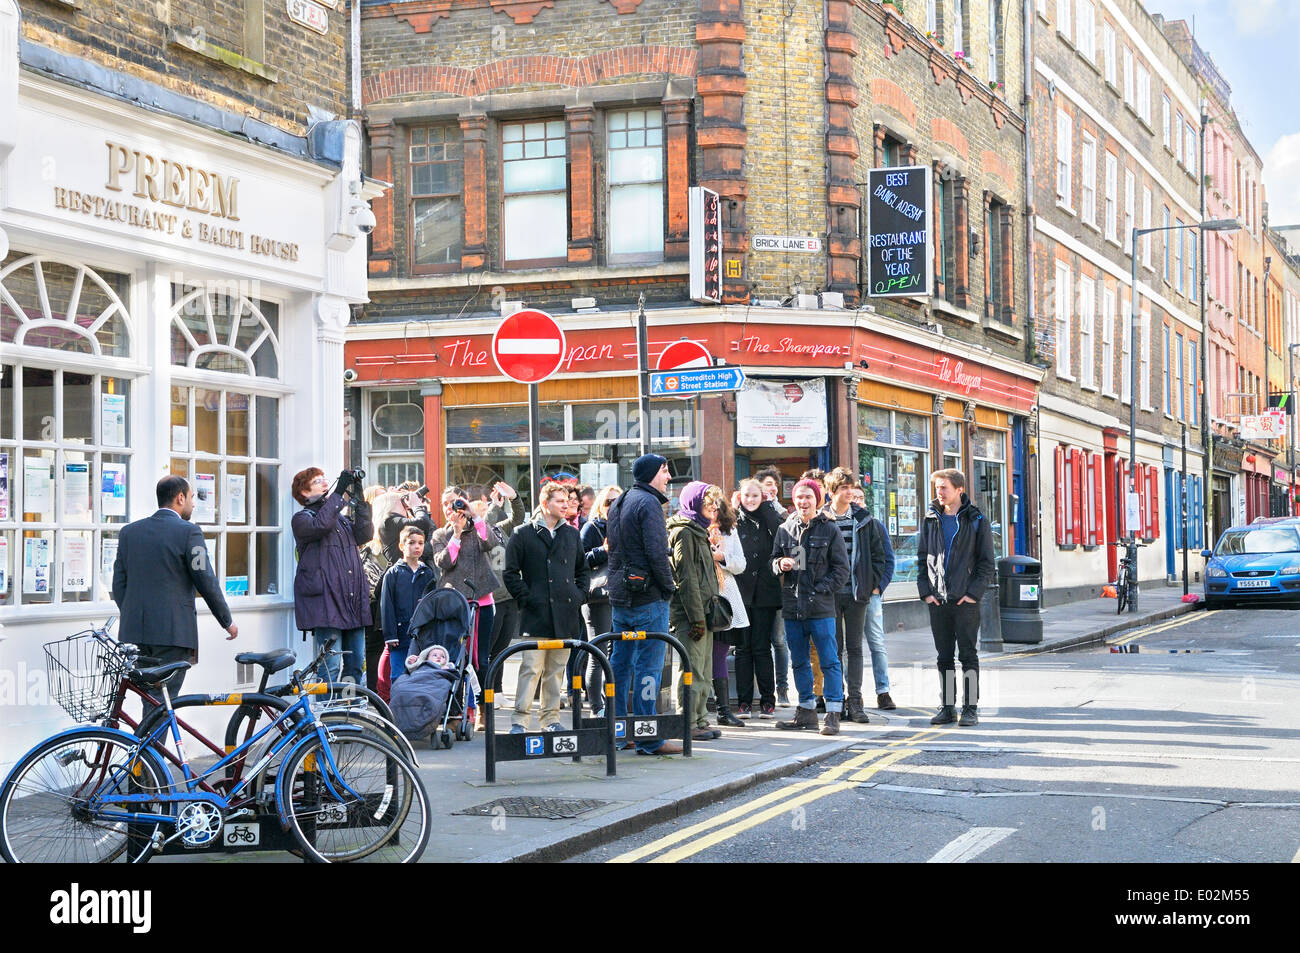 Guided tour in Brick Lane, Tower Hamlets, East London, UK - Stock Image